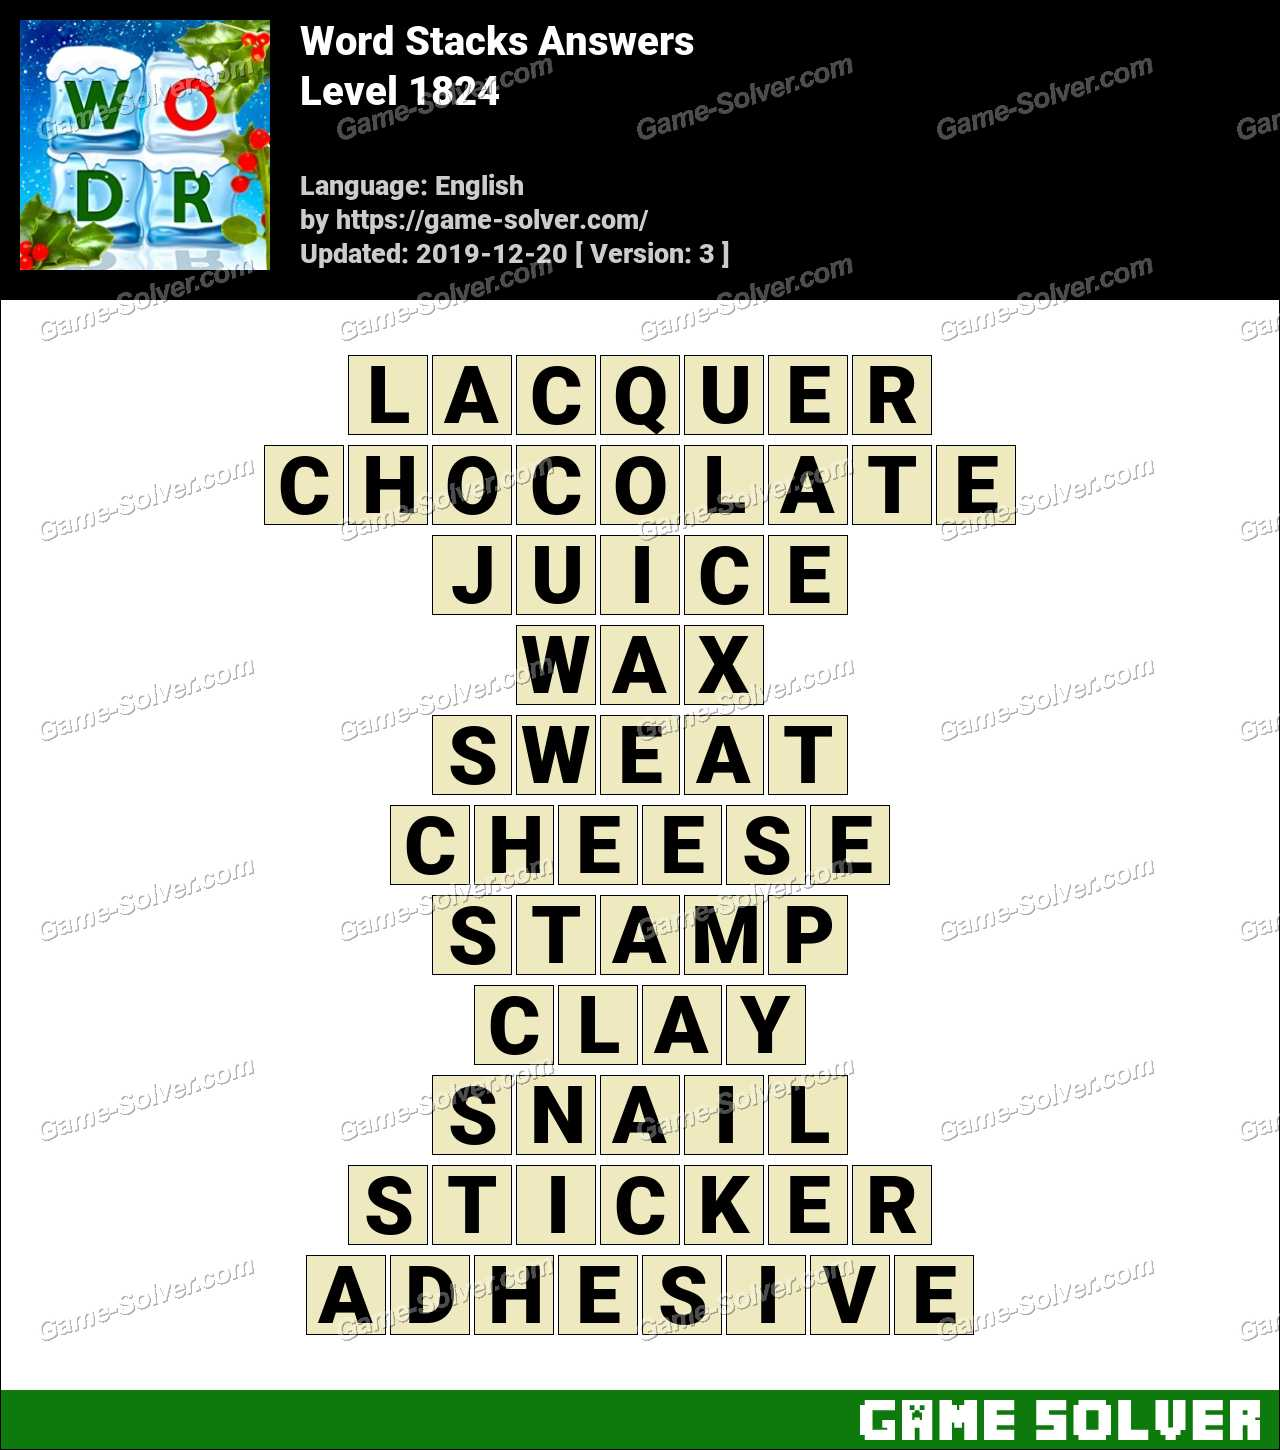 Word Stacks Level 1824 Answers